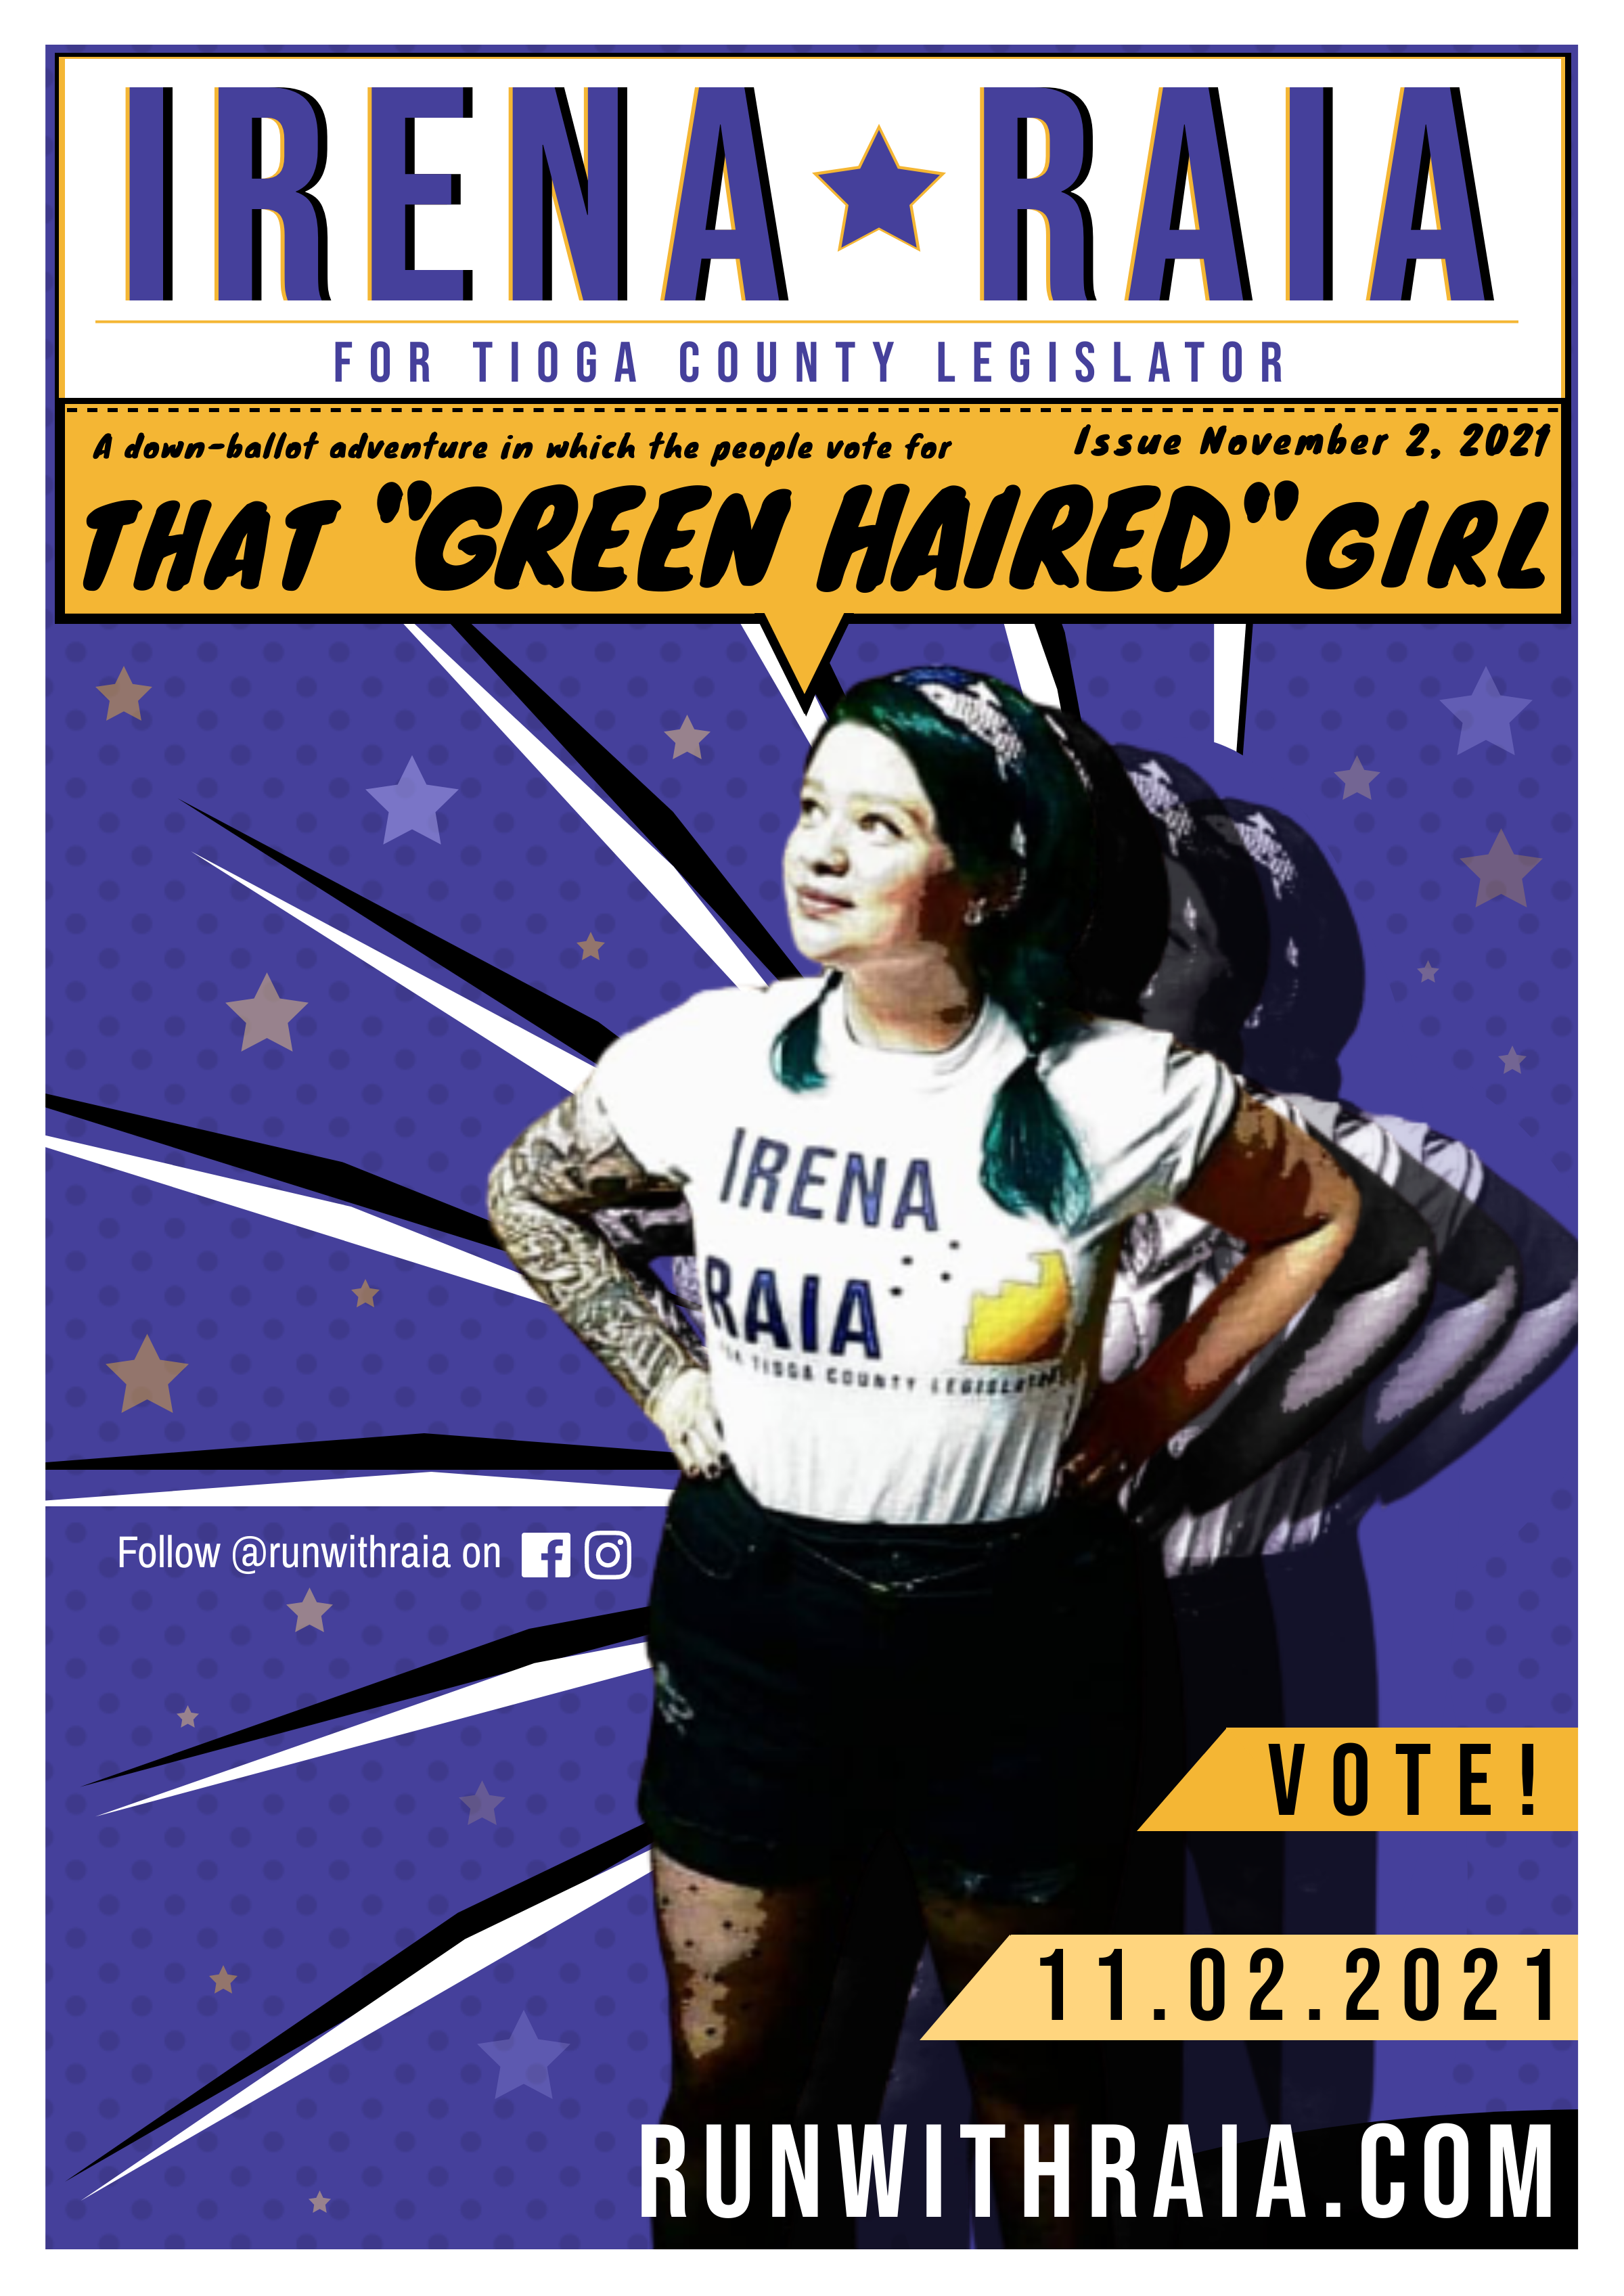 """Image of a white woman with green hair standing and text that says 'IRENA RAIA FOR TIOGA COUNTY LEGISLATOR' with subtext that reads """"a down-ballot adventure in which the people vote for """"THAT GREEN HAIRED GIRL"""" , Issue November 2, 2021"""" , as well as words that read """"VOTE!"""" and runwithraia.com. the background is purple with yellow and white stars, the colors of the women's suffrage movement."""